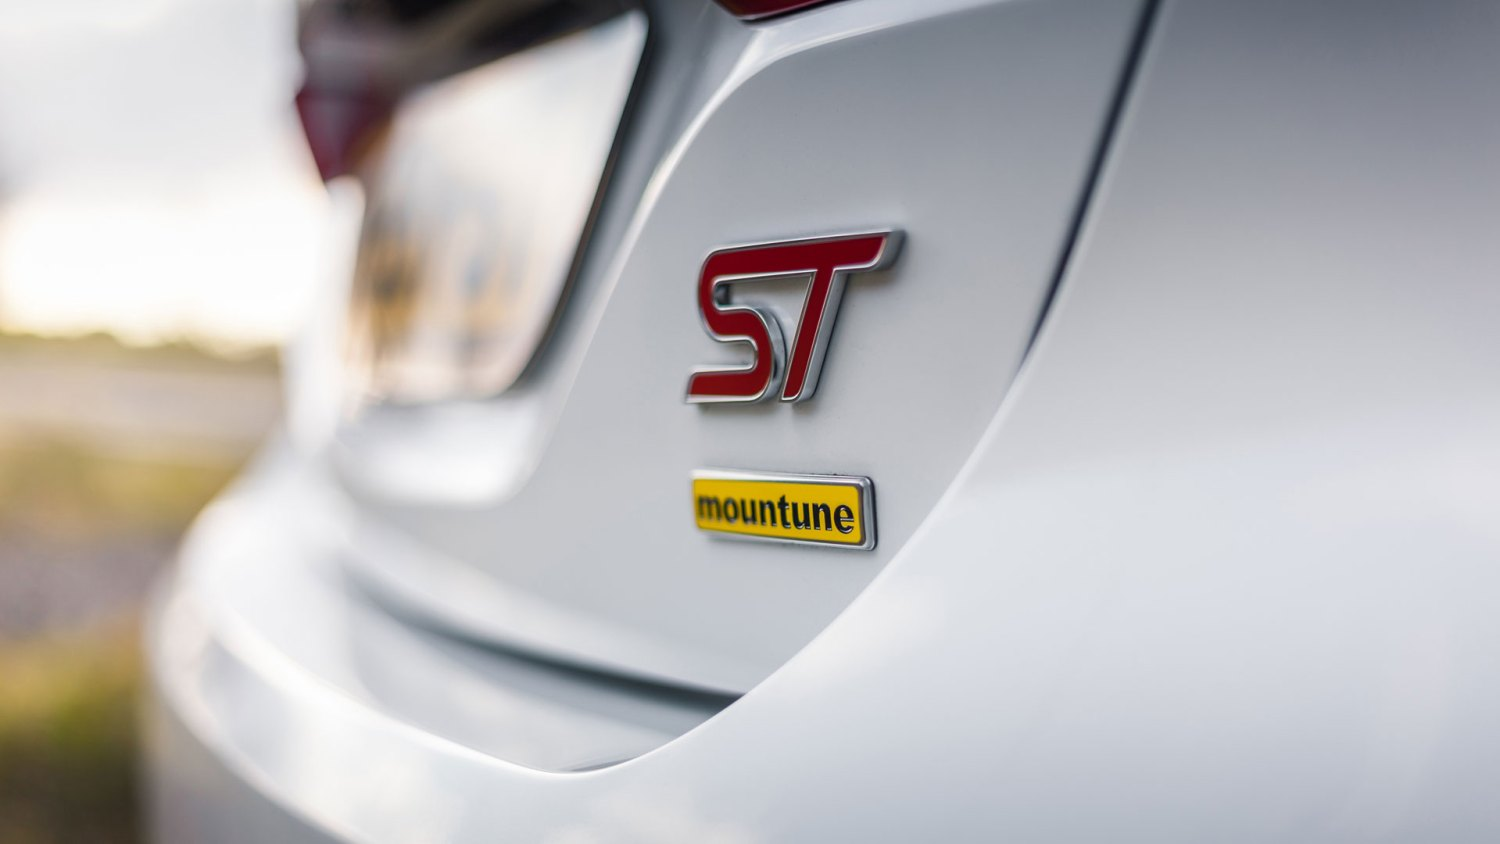 Fiesta Mountune badge